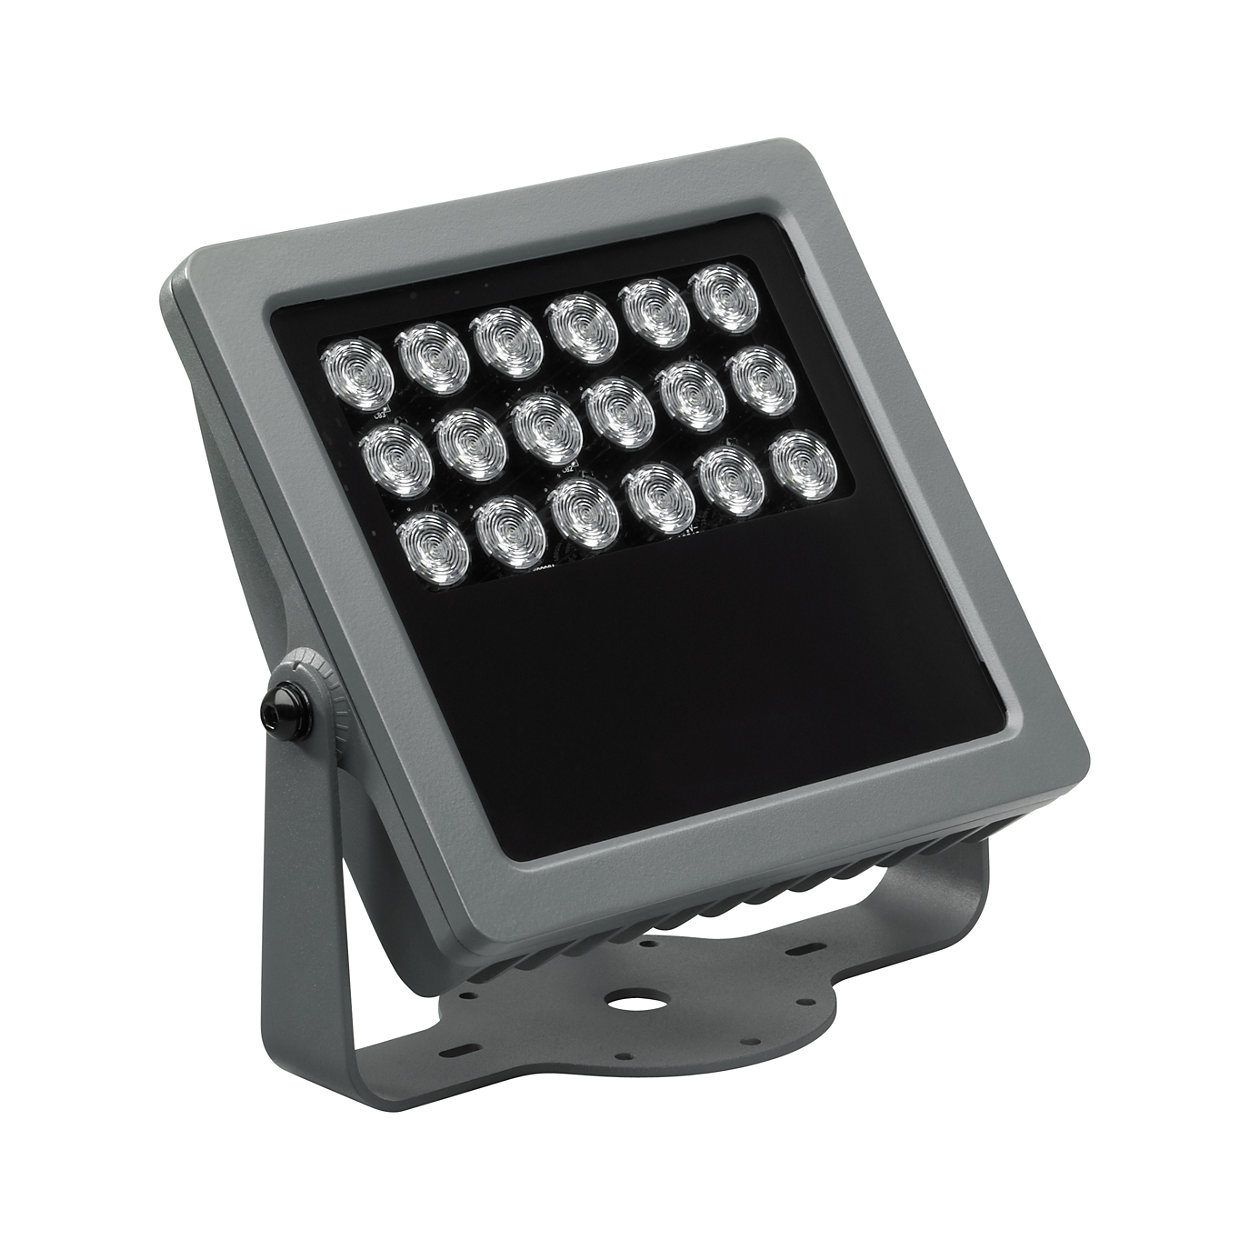 Vaya Flood LP – Low power architectural LED flood light for crisp white or dynamic color-changing lighting effects